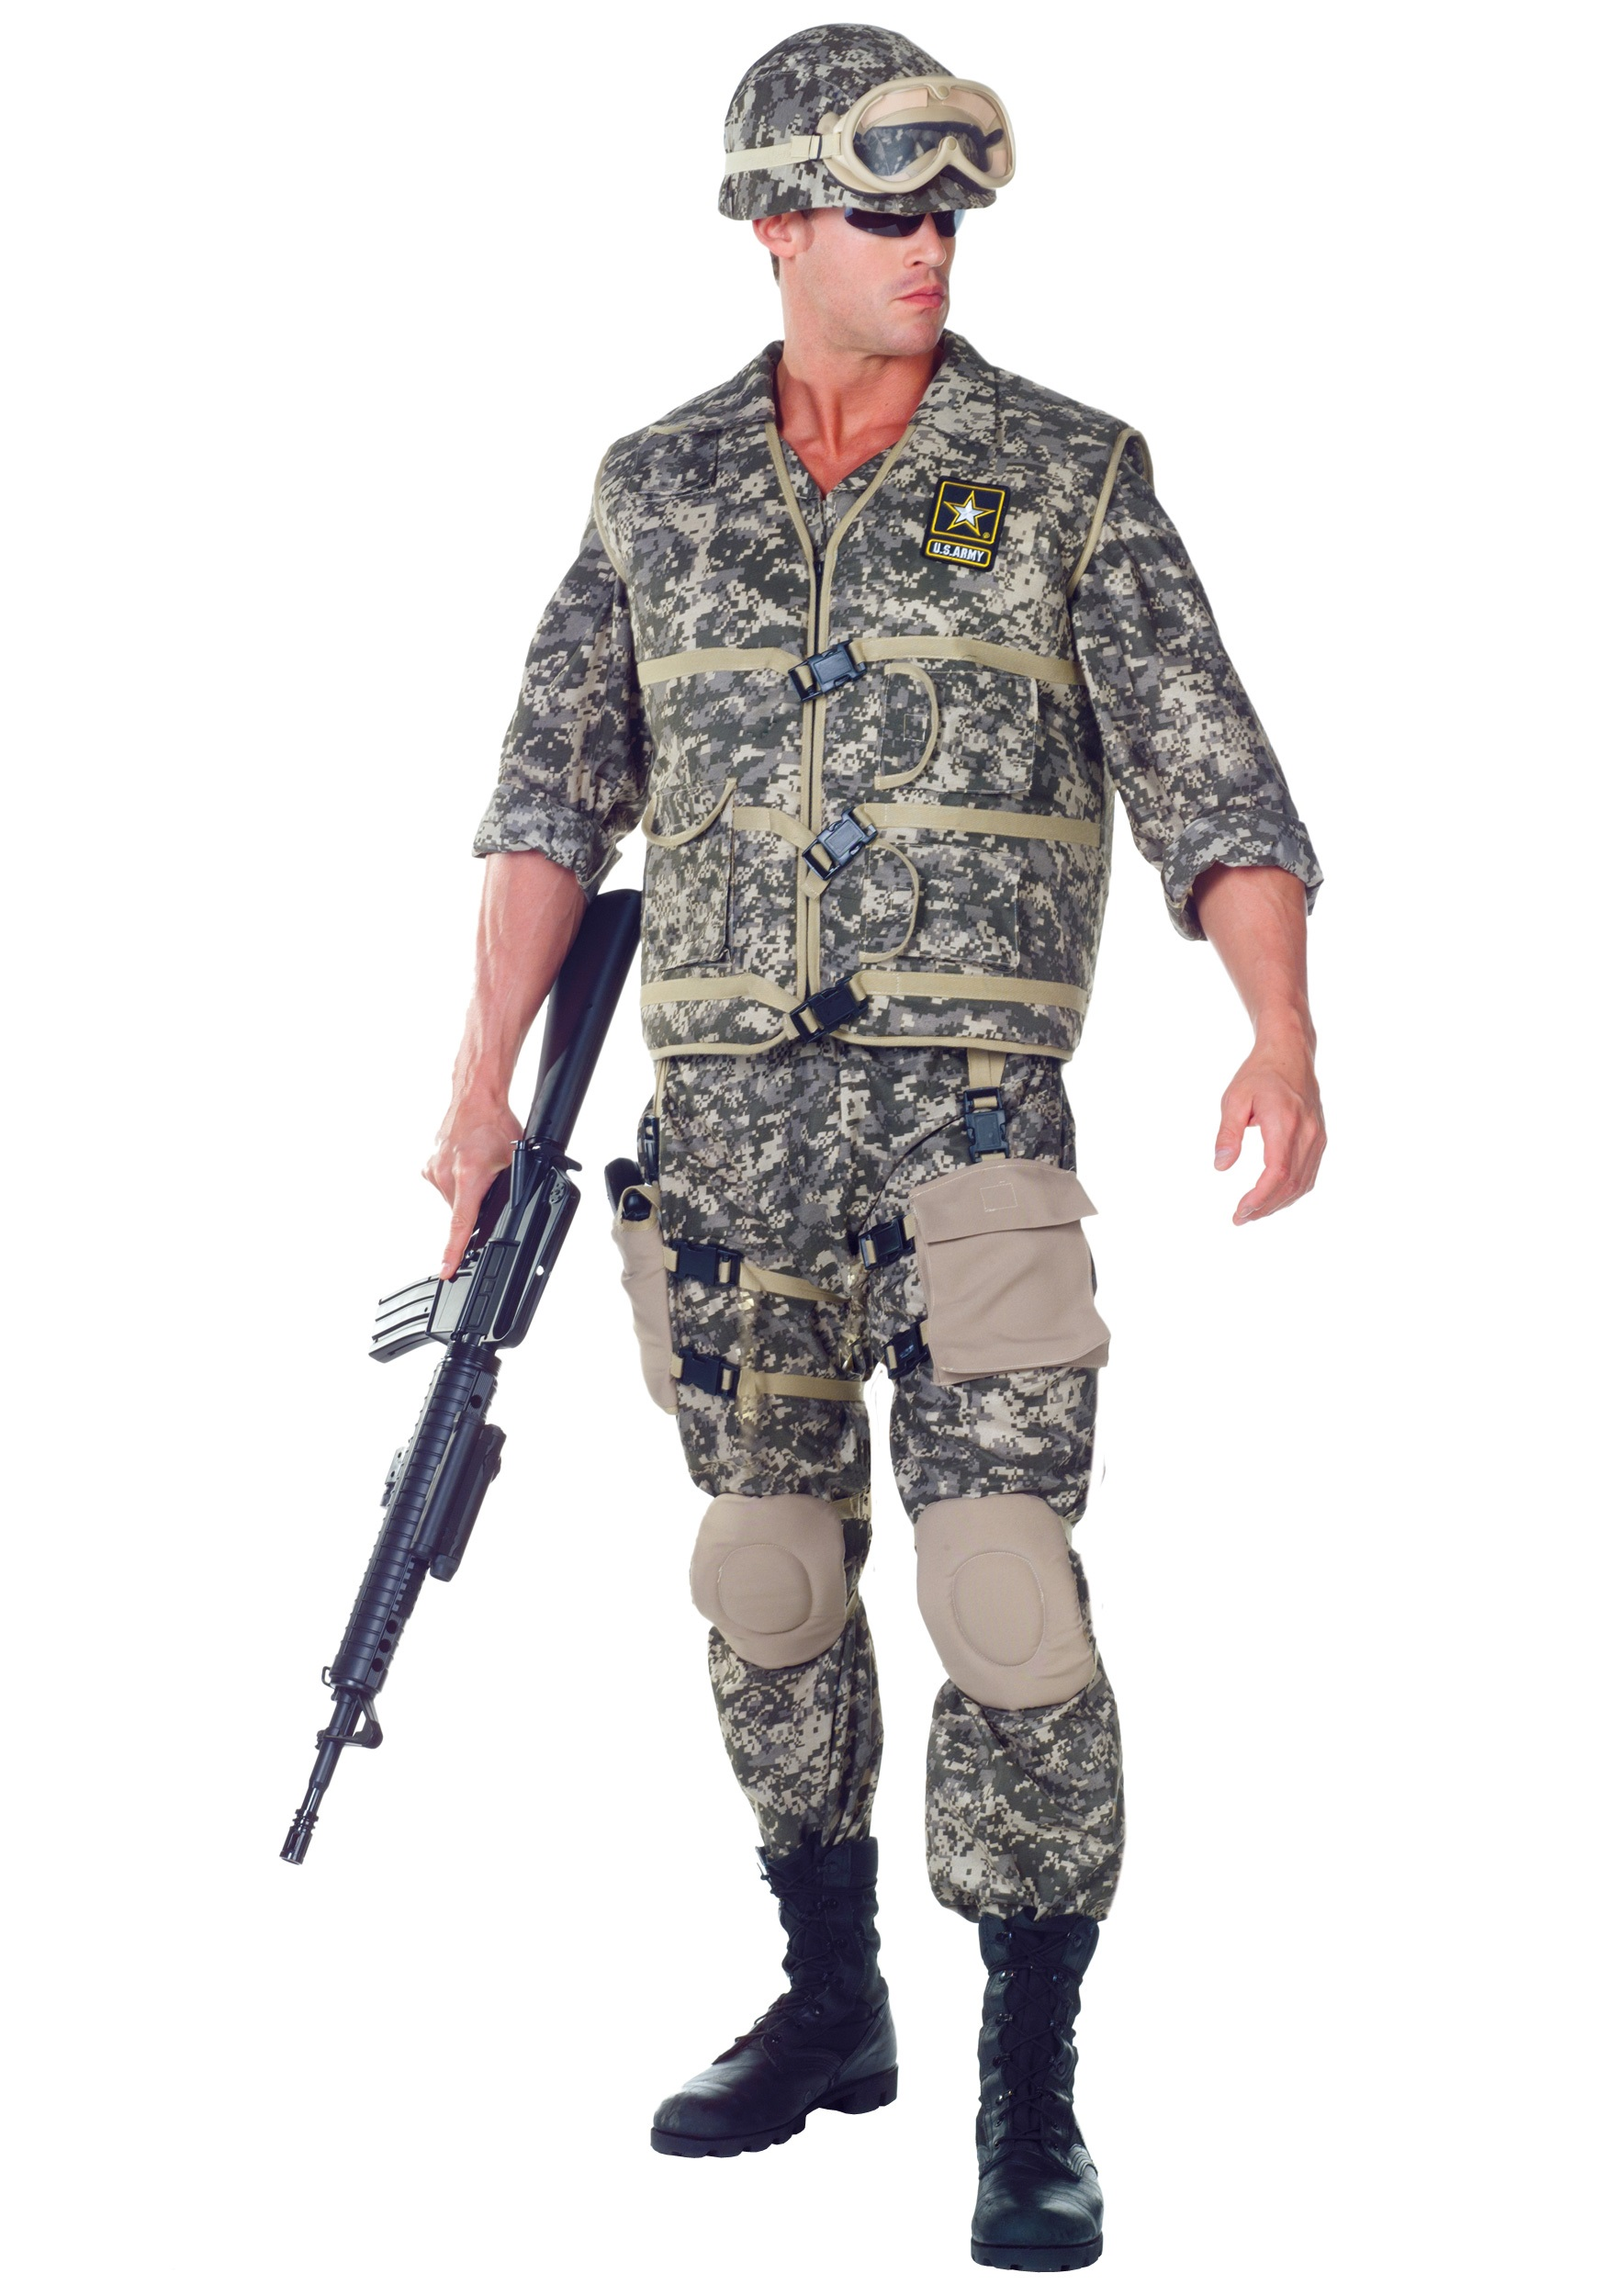 Army Costumes & Camo Soldier Outfits - HalloweenCostumes com